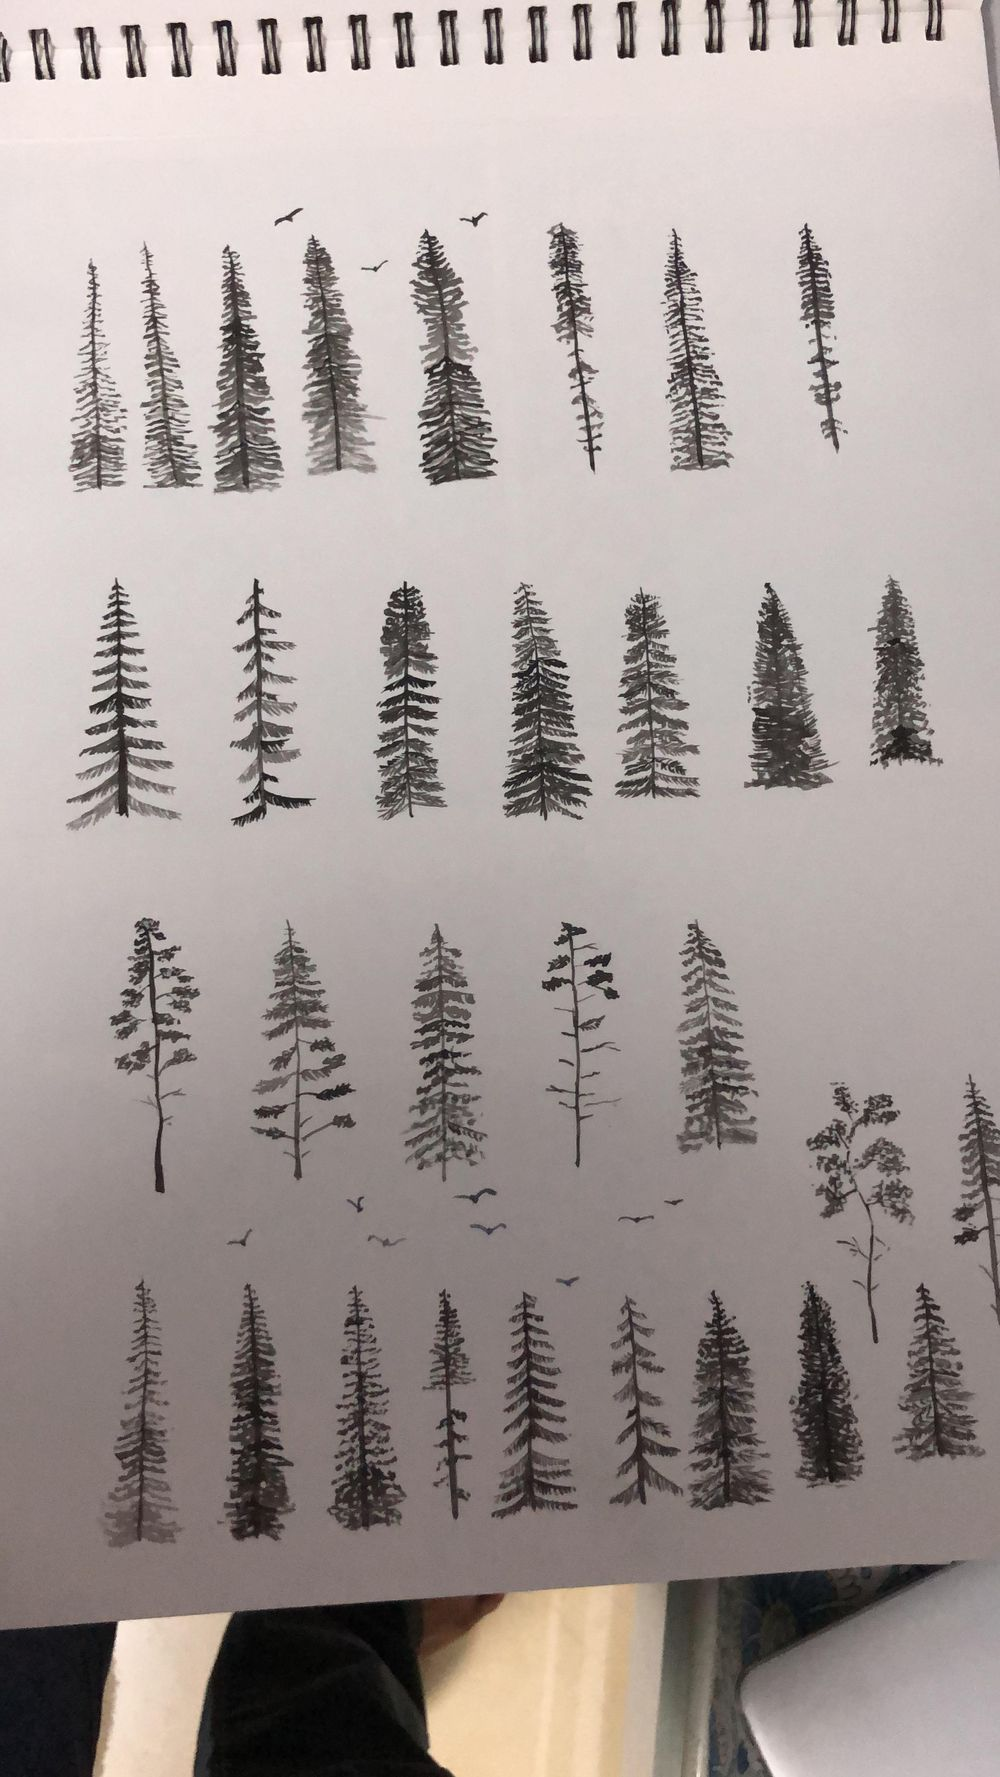 Pine trees - image 2 - student project